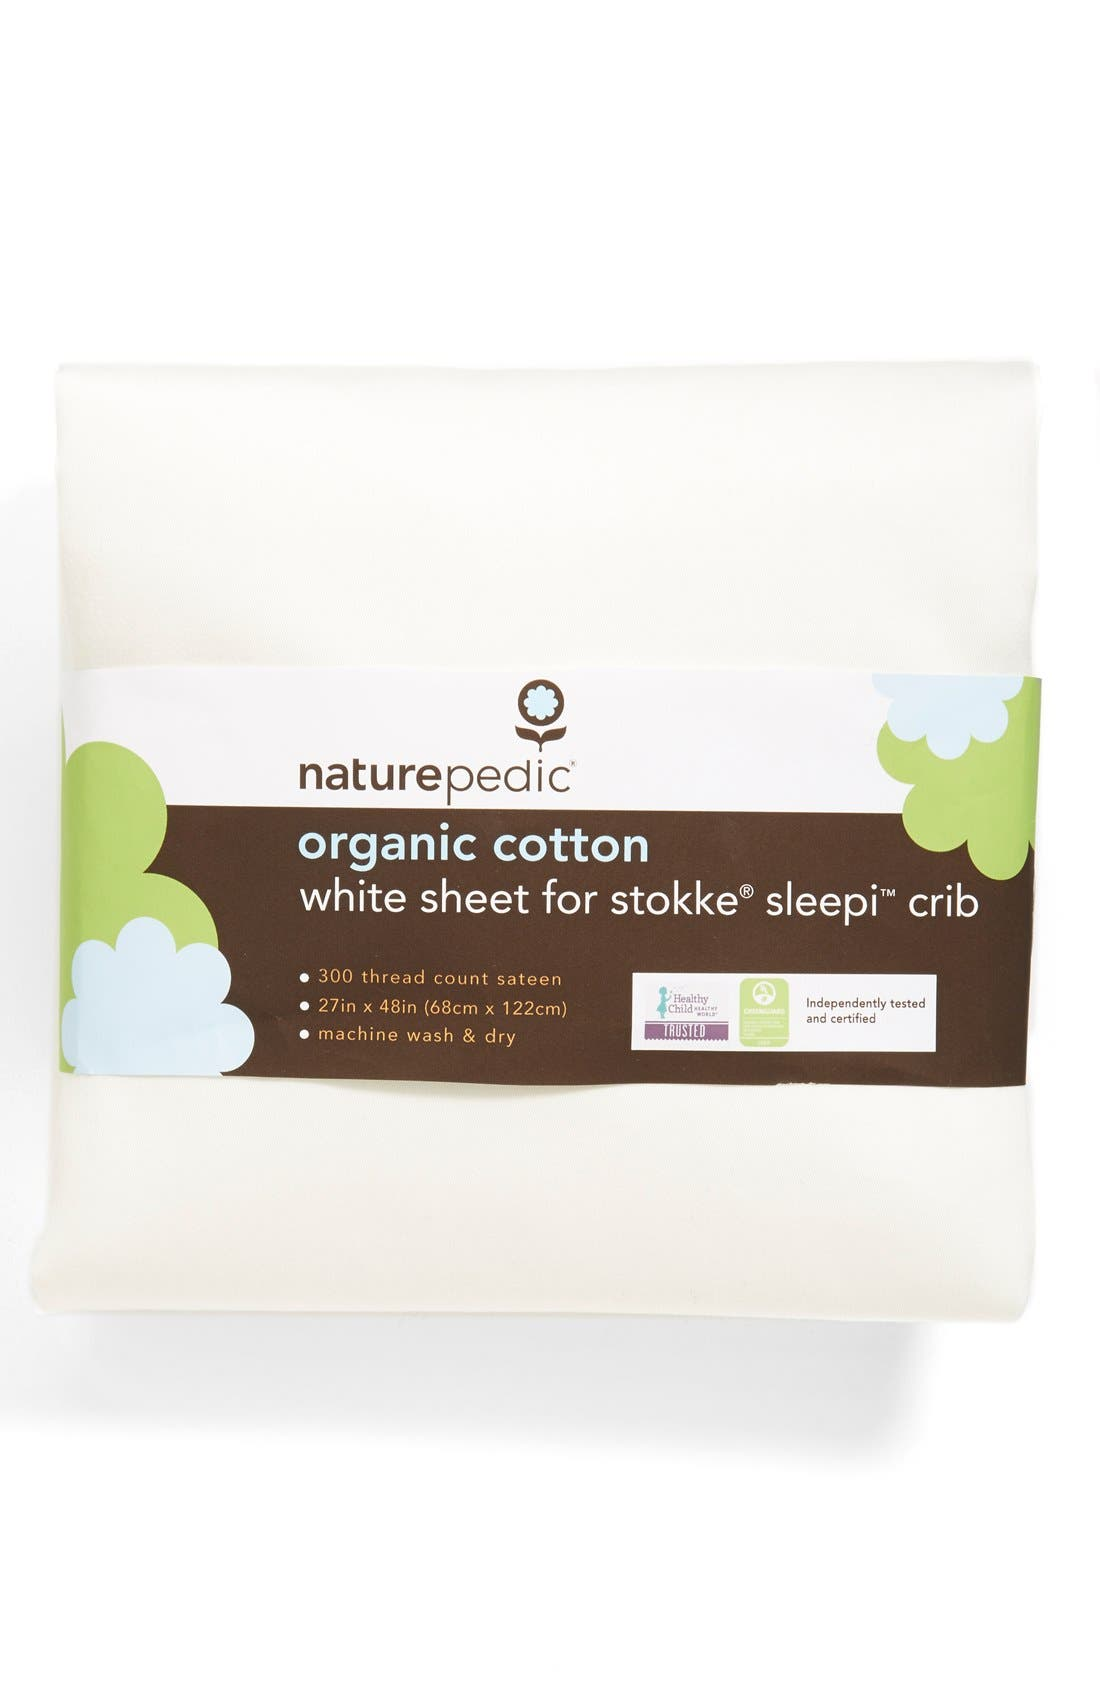 Naturepedic 300 Thread Count Organic Cotton Oval Crib Sheet for Stokke Sleepi Crib